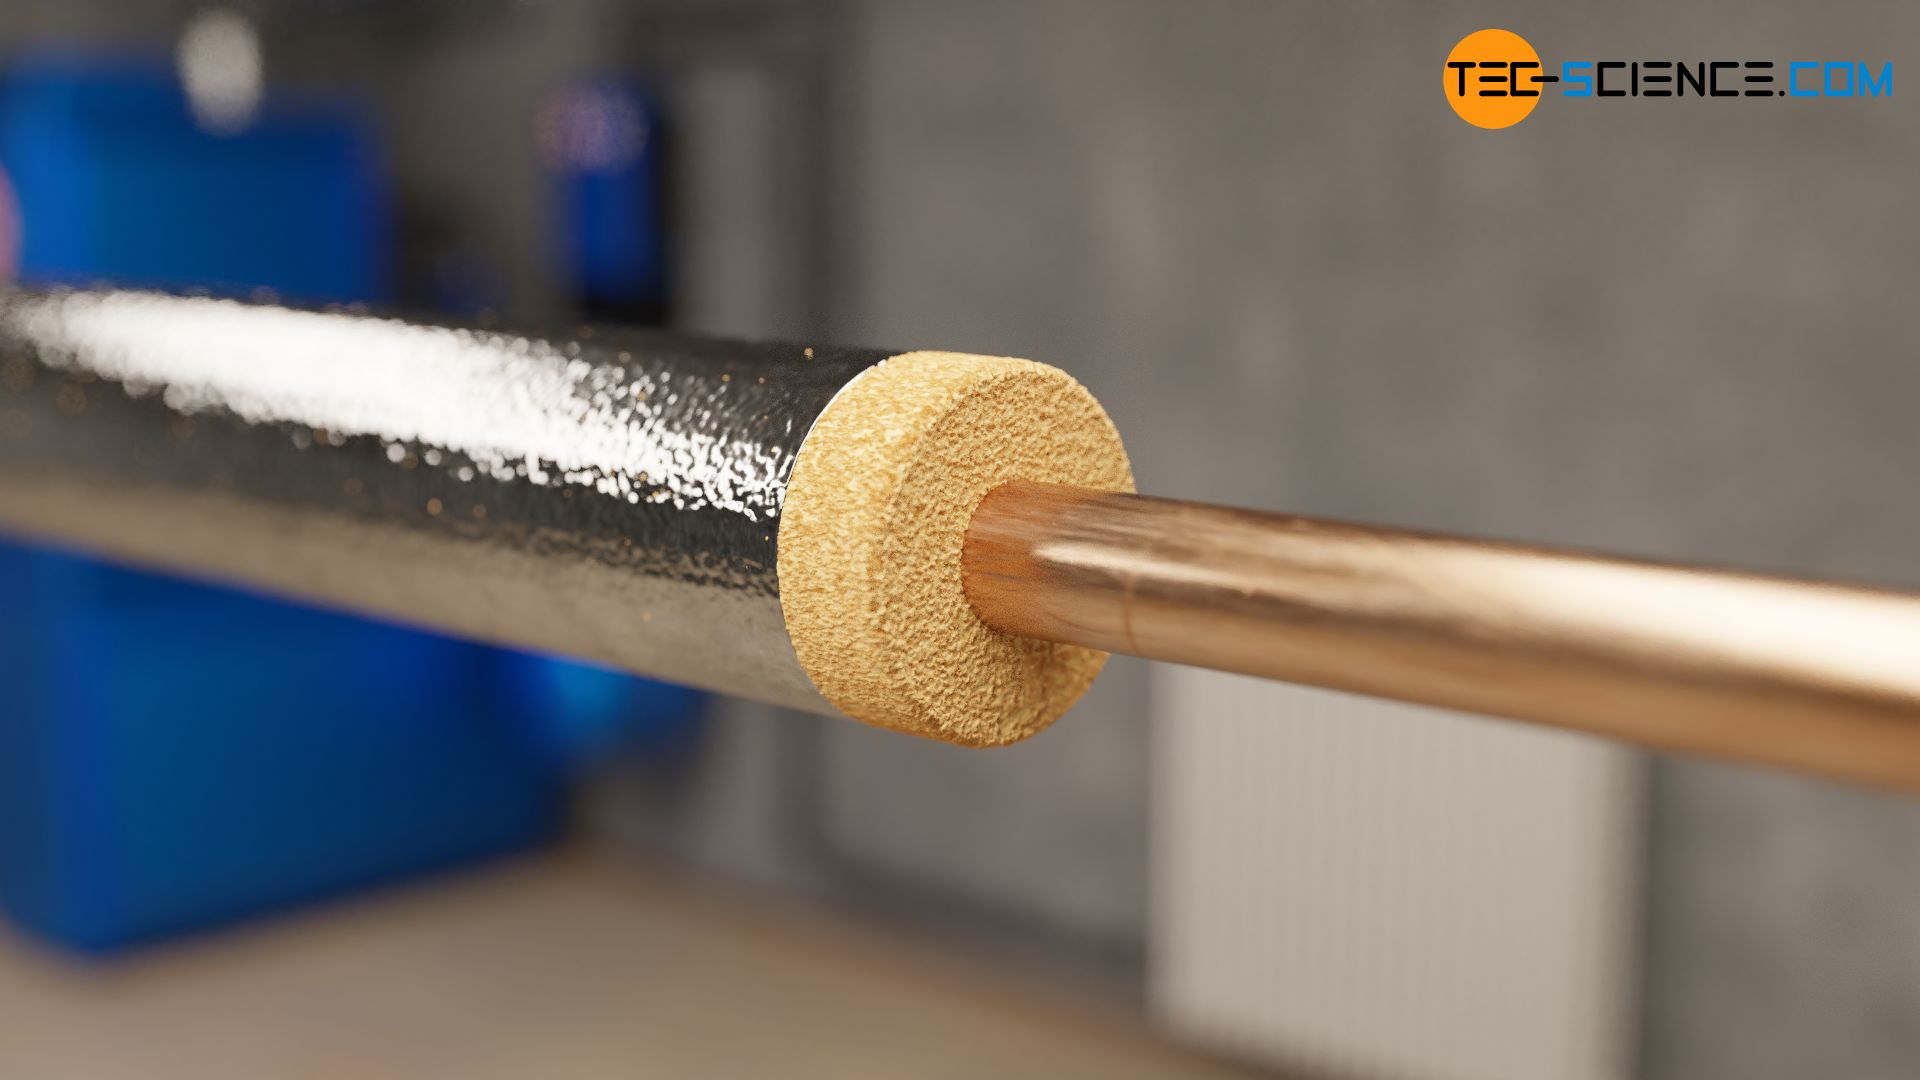 Thermal insulation of a hot water pipe with reflective foil